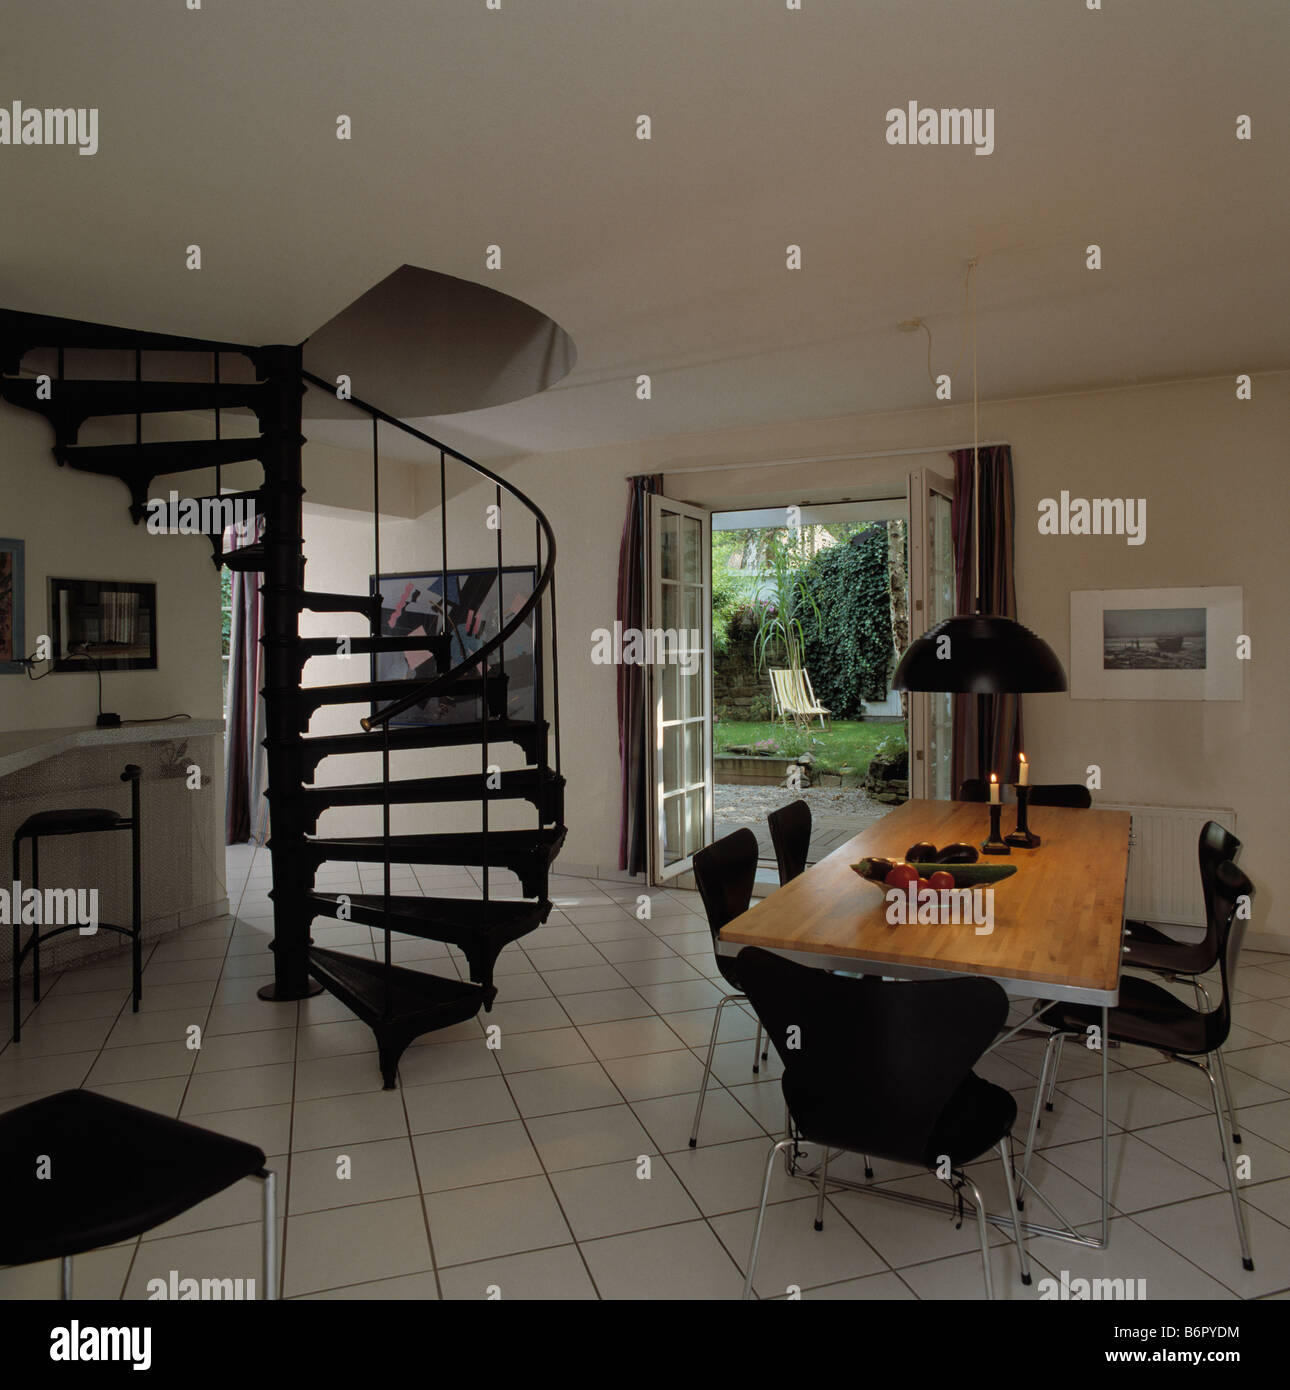 Black Spiral Staircase In Modern White Hall Dining Room With Tiled Floor And Double French Doors Open To Garden